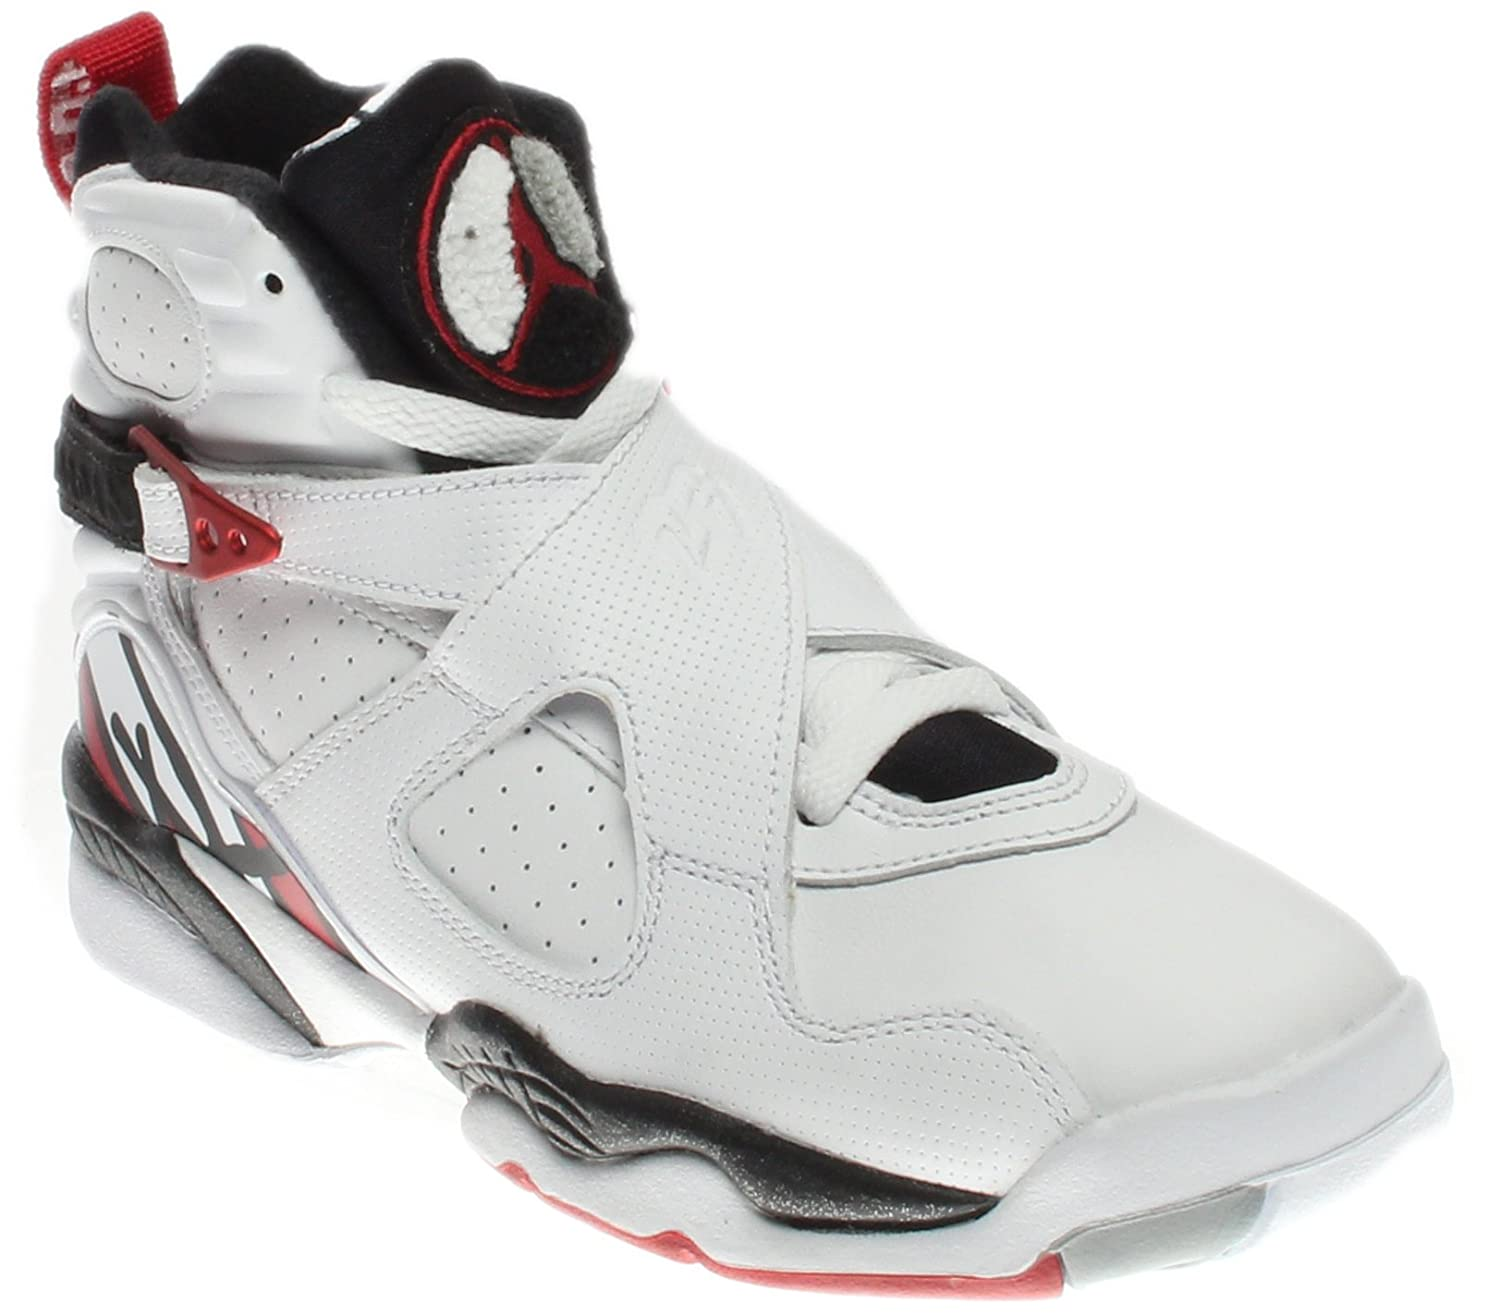 official photos 2e762 ad66b Amazon.com | Nike Kids Air Jordan 8 Retro GS White/Red/Black ...